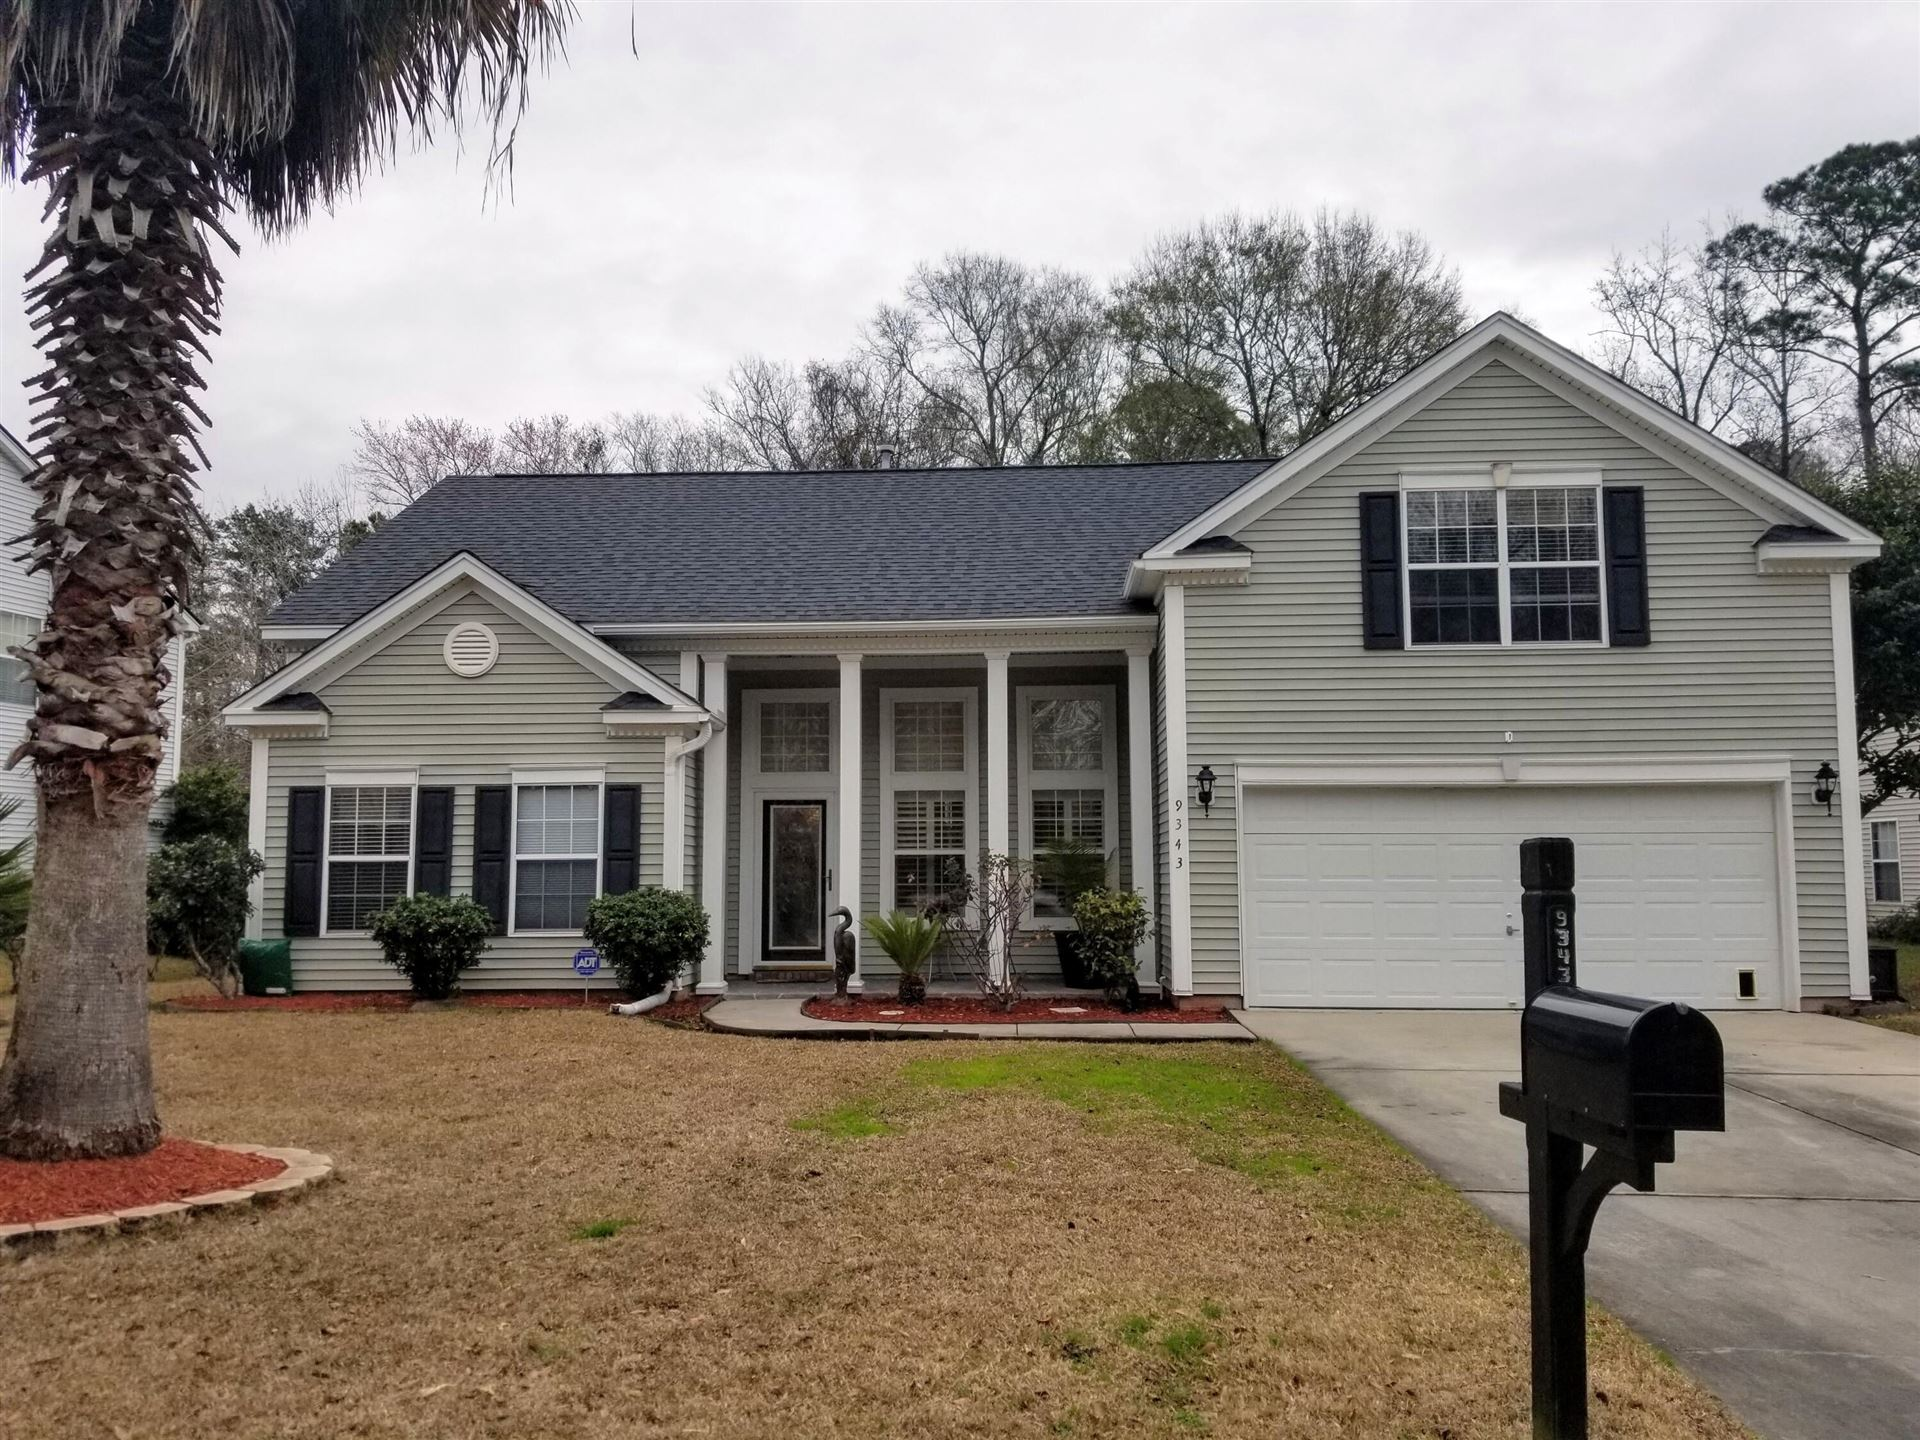 Photo of 9343 Harroway Road, Summerville, SC 29485 (MLS # 21004791)